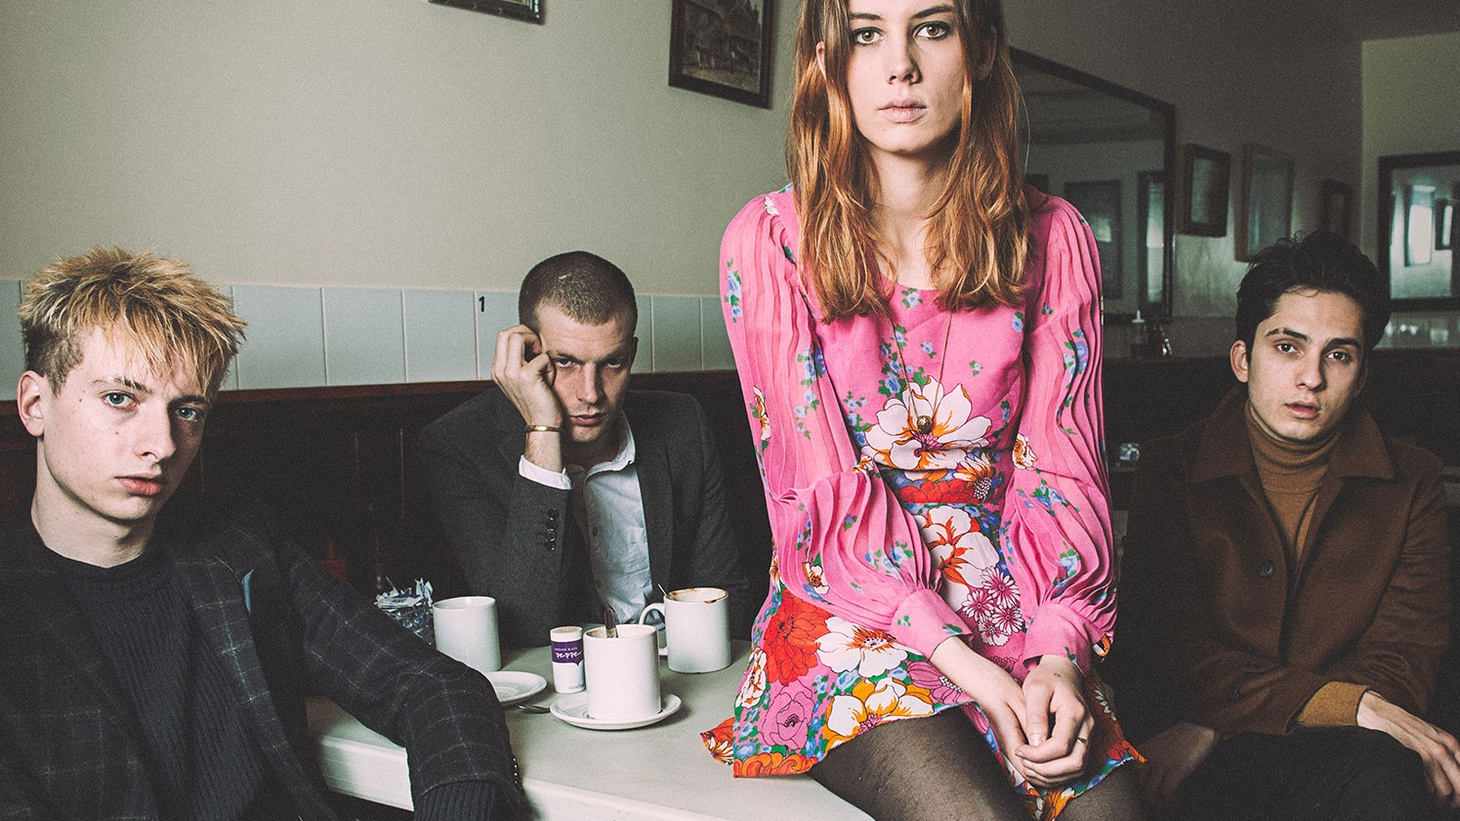 Wolf Alice has an intriguing name and a beguiling vocalist named Ellie Rowsell.